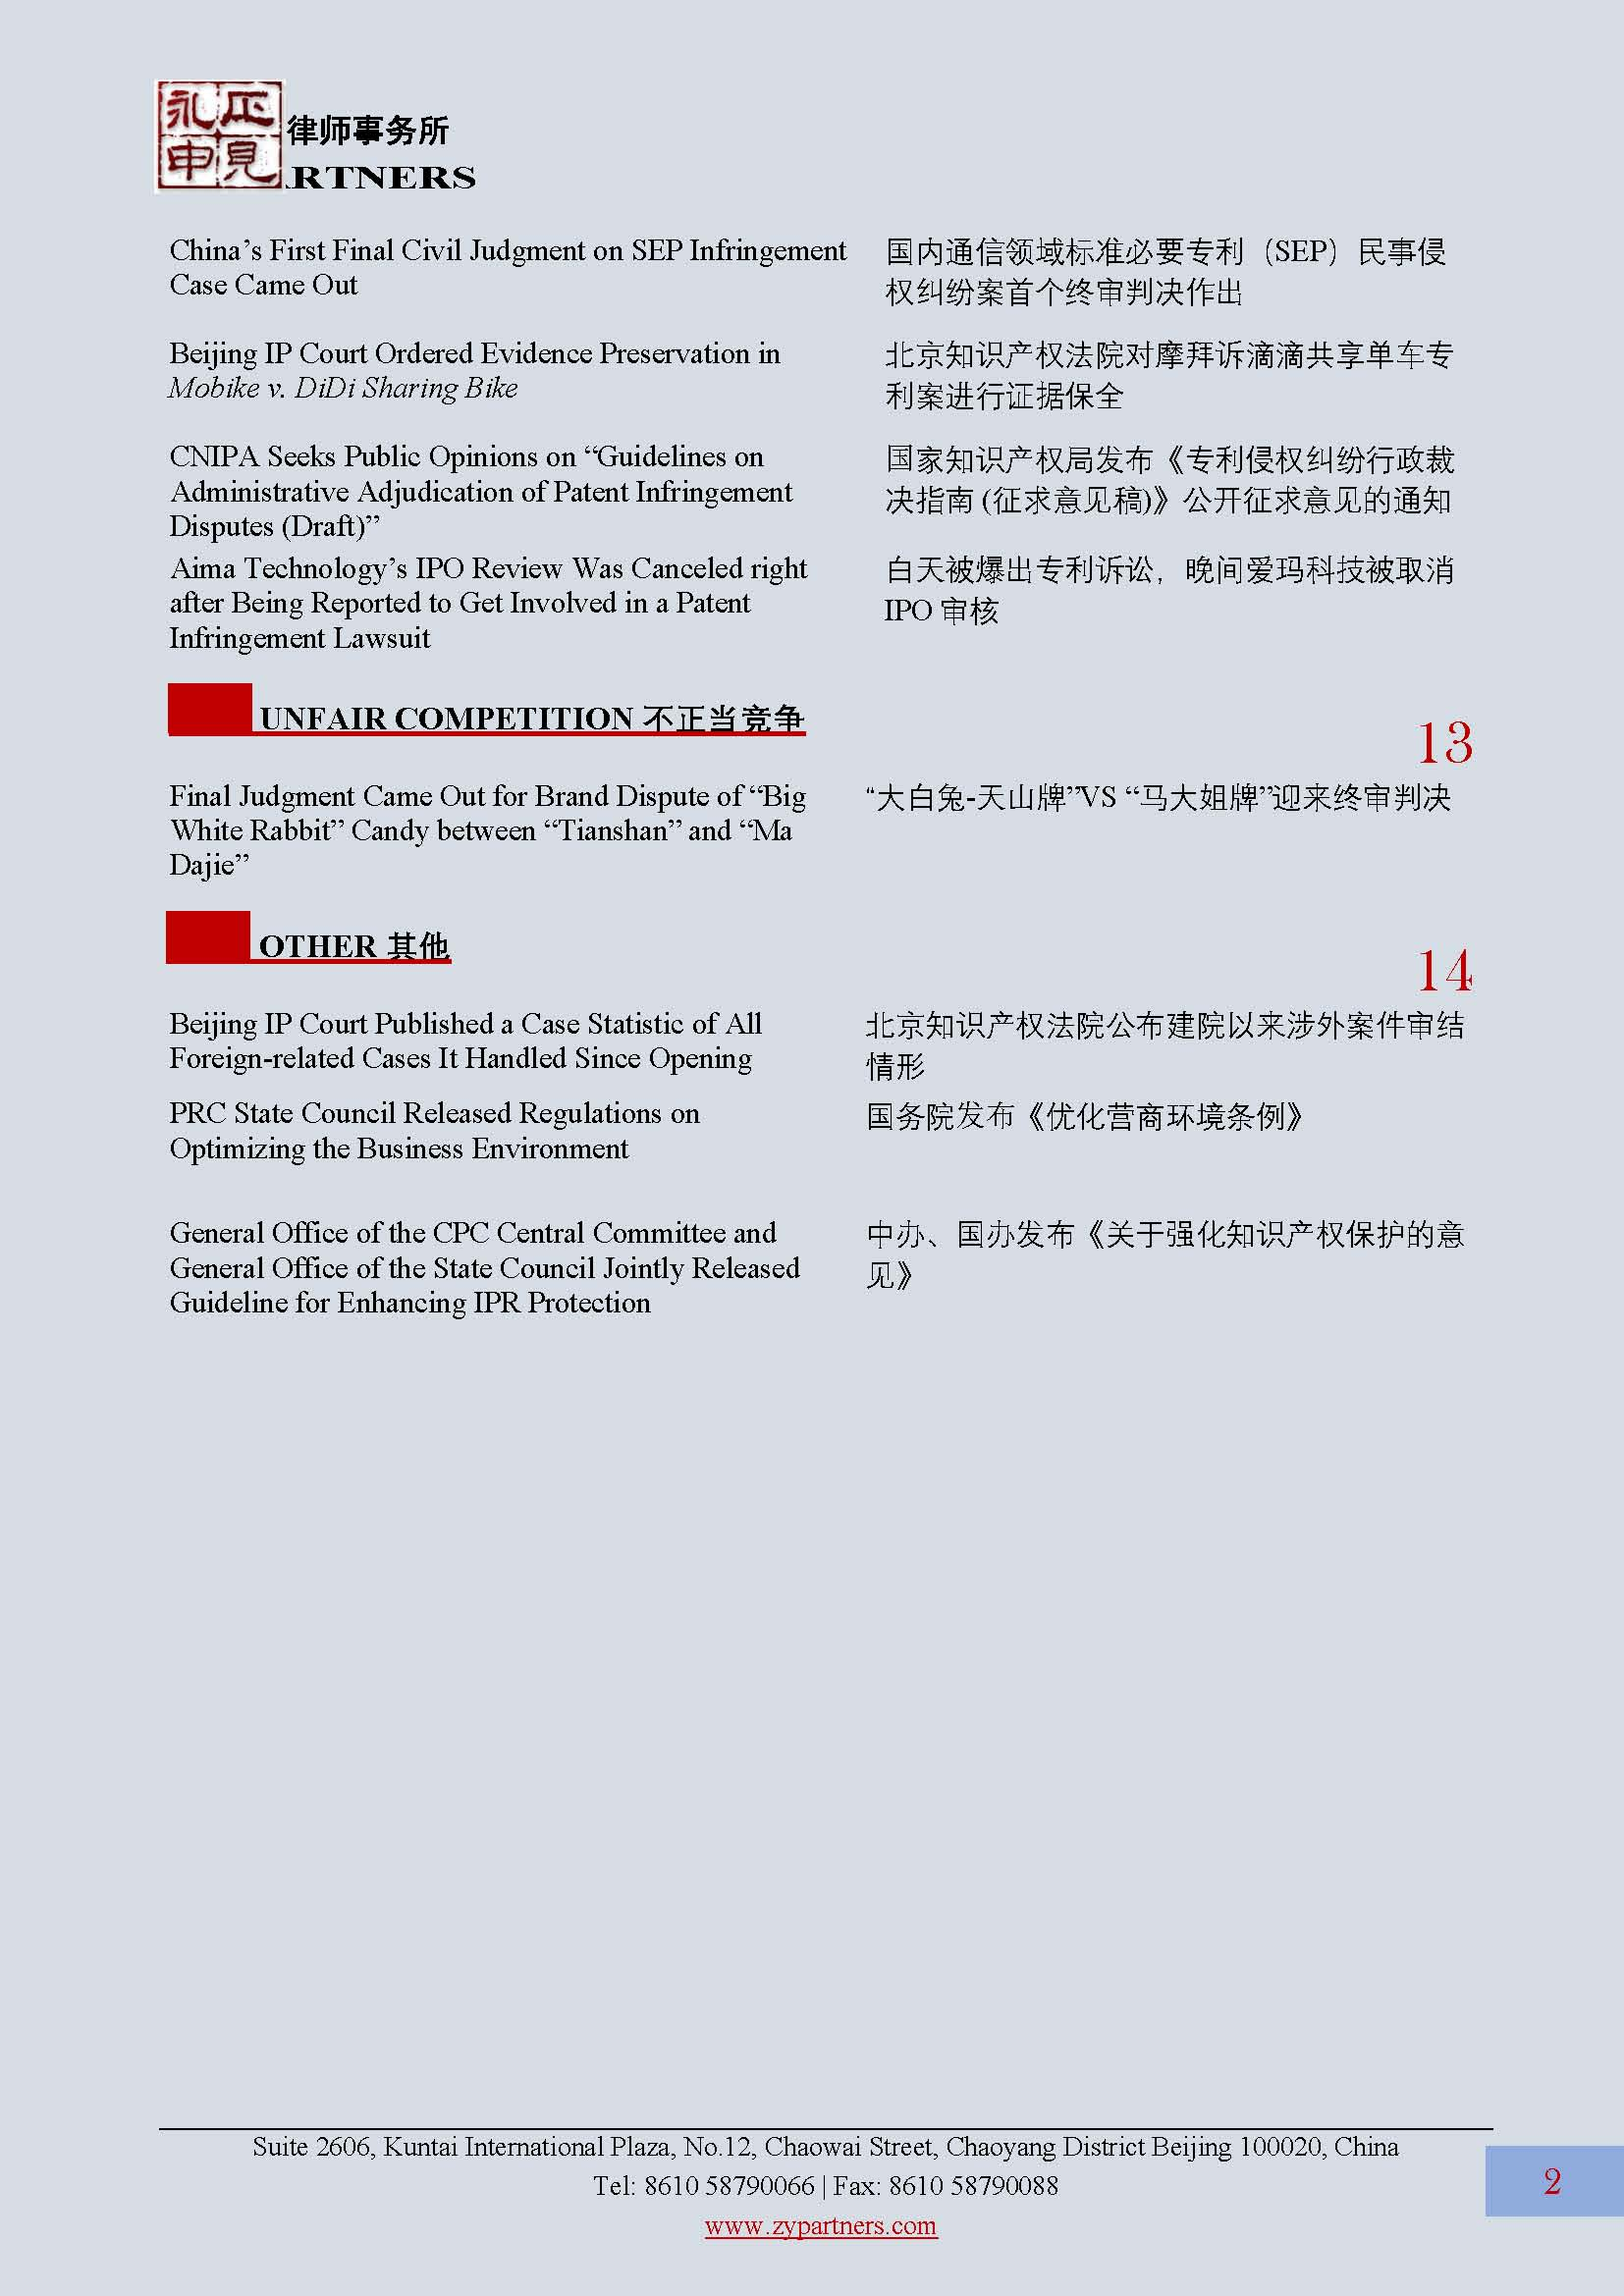 ZY+Newsletter+Vol+4_页面_02.jpg